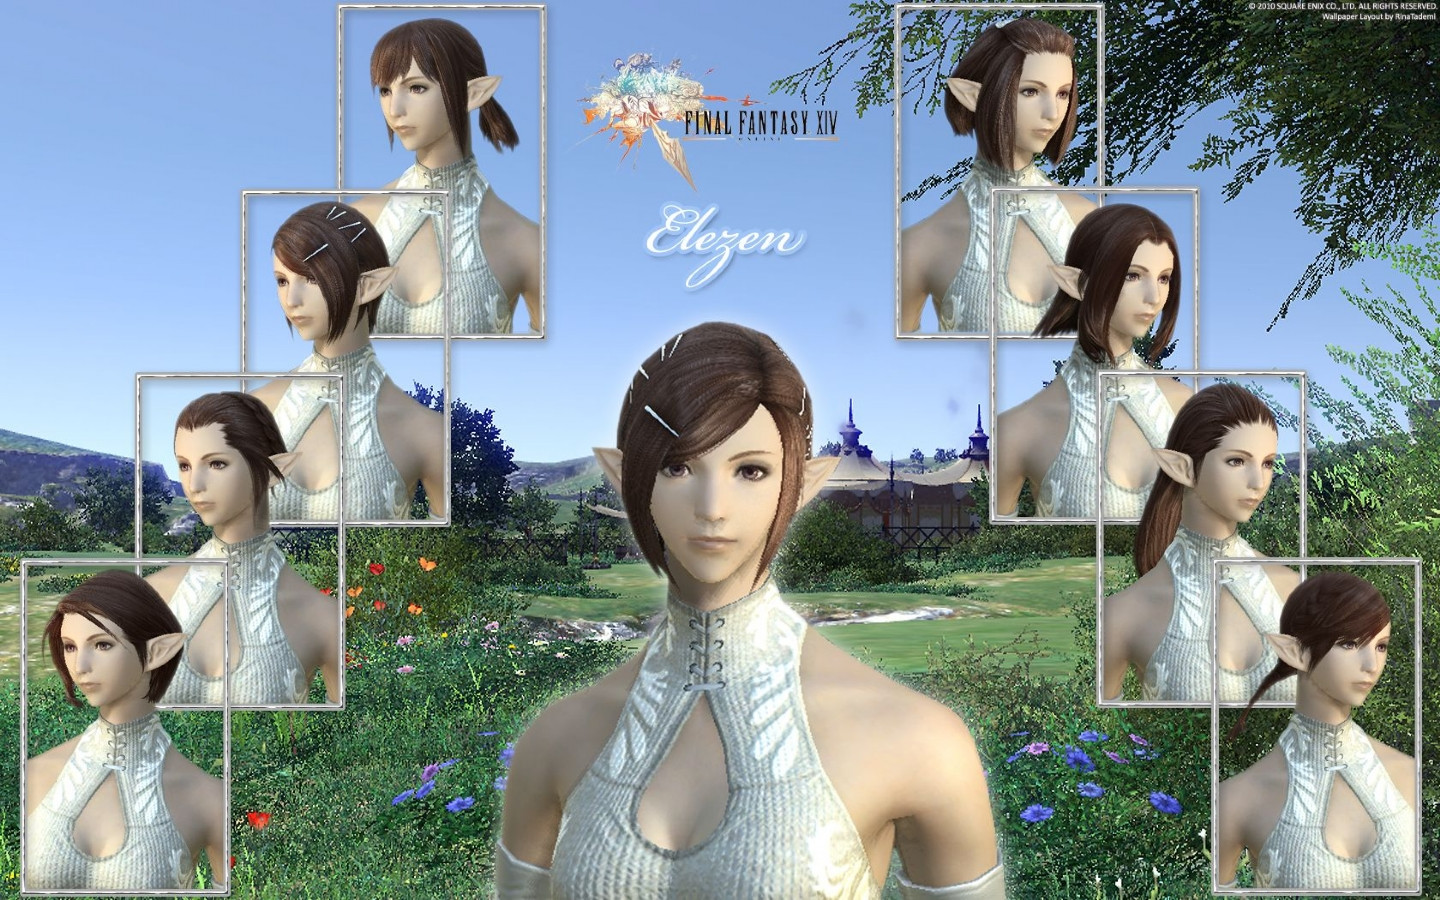 Best ideas about Ffxiv Female Hairstyles . Save or Pin Games FFXIV Elezen Female Hairstyle Wallpaper desktop Now.